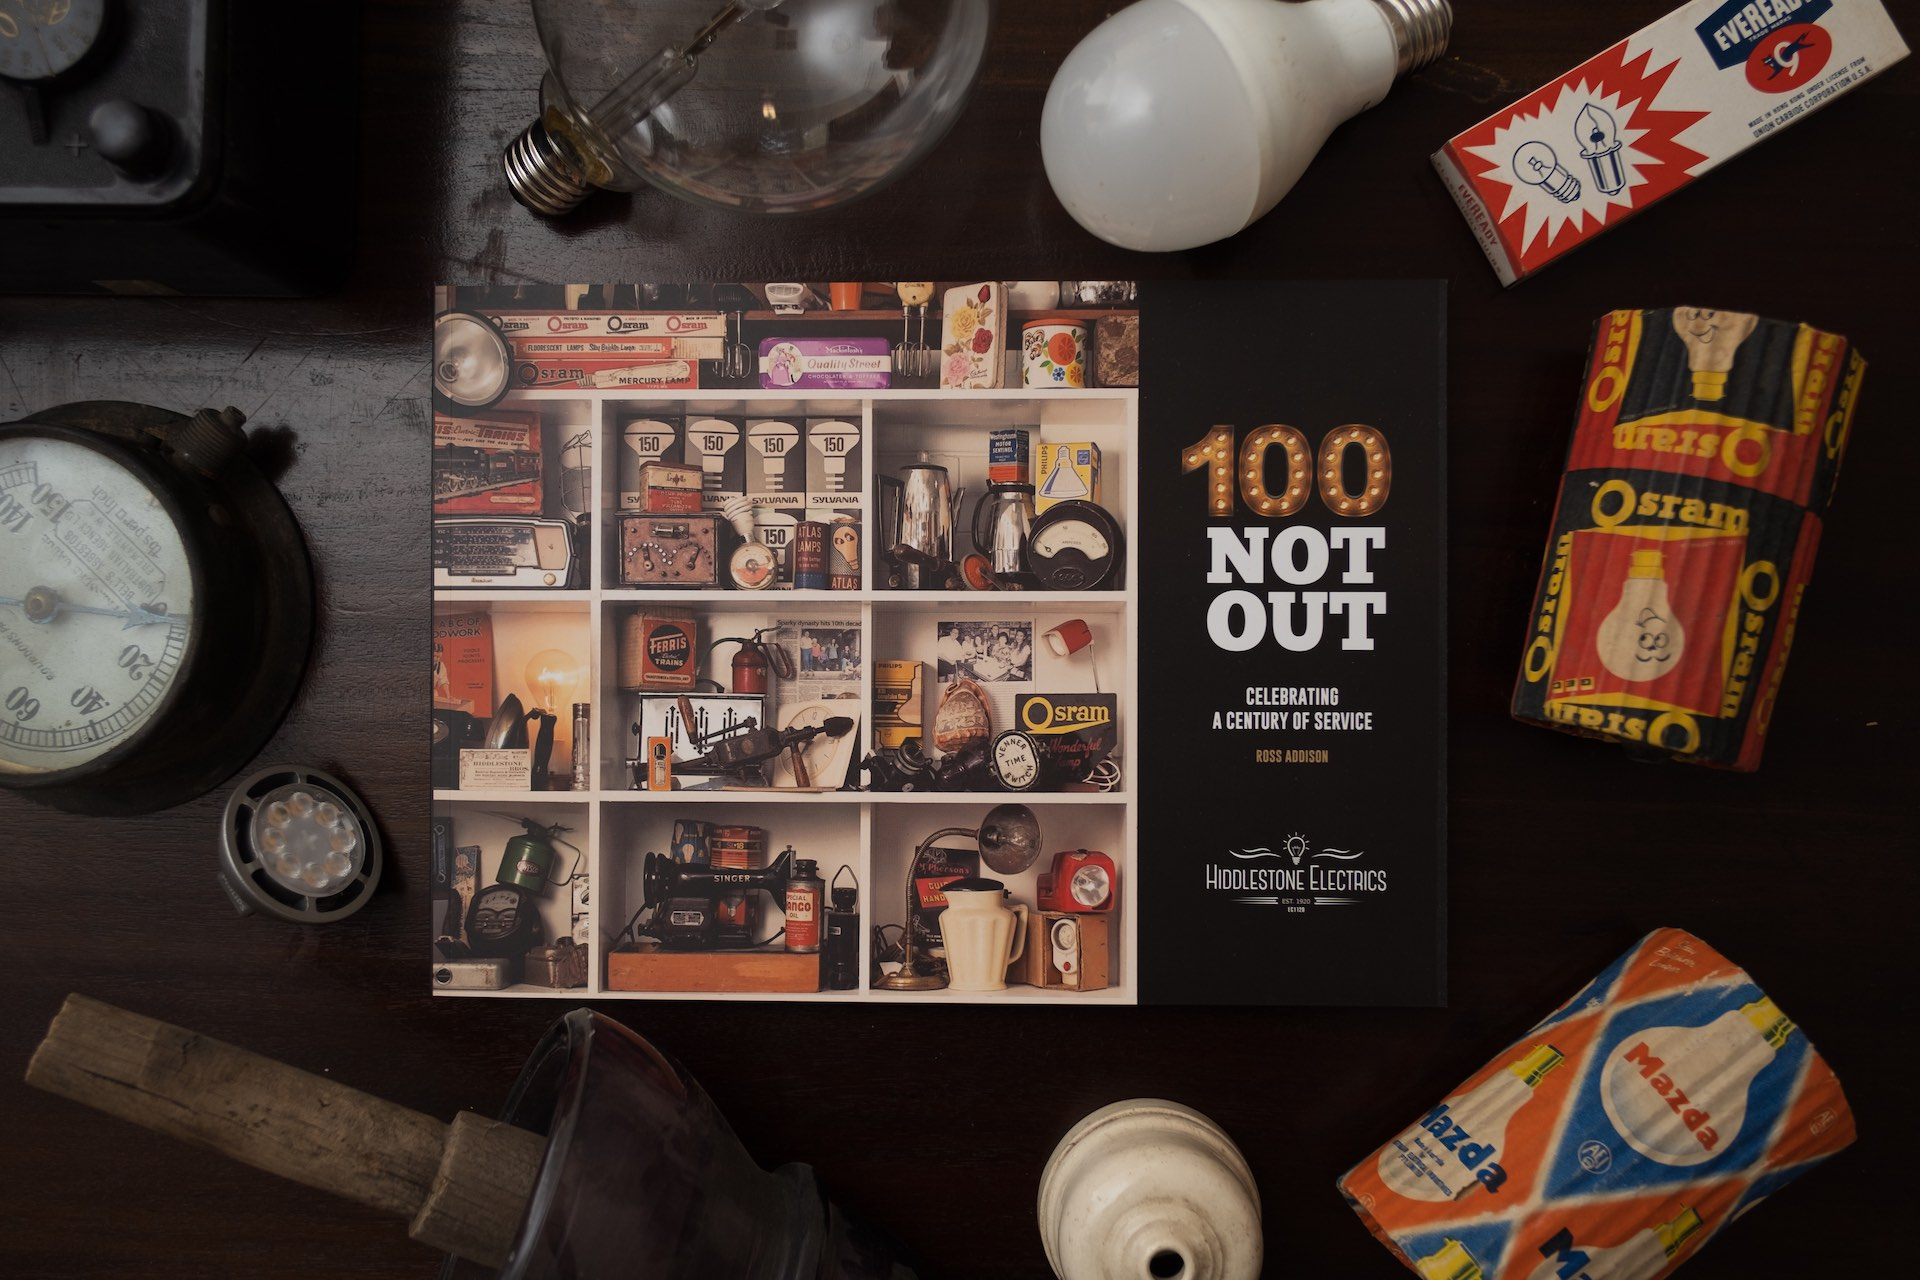 '100 NOT OUT' Book Celebrates A Century of Service To Subiaco